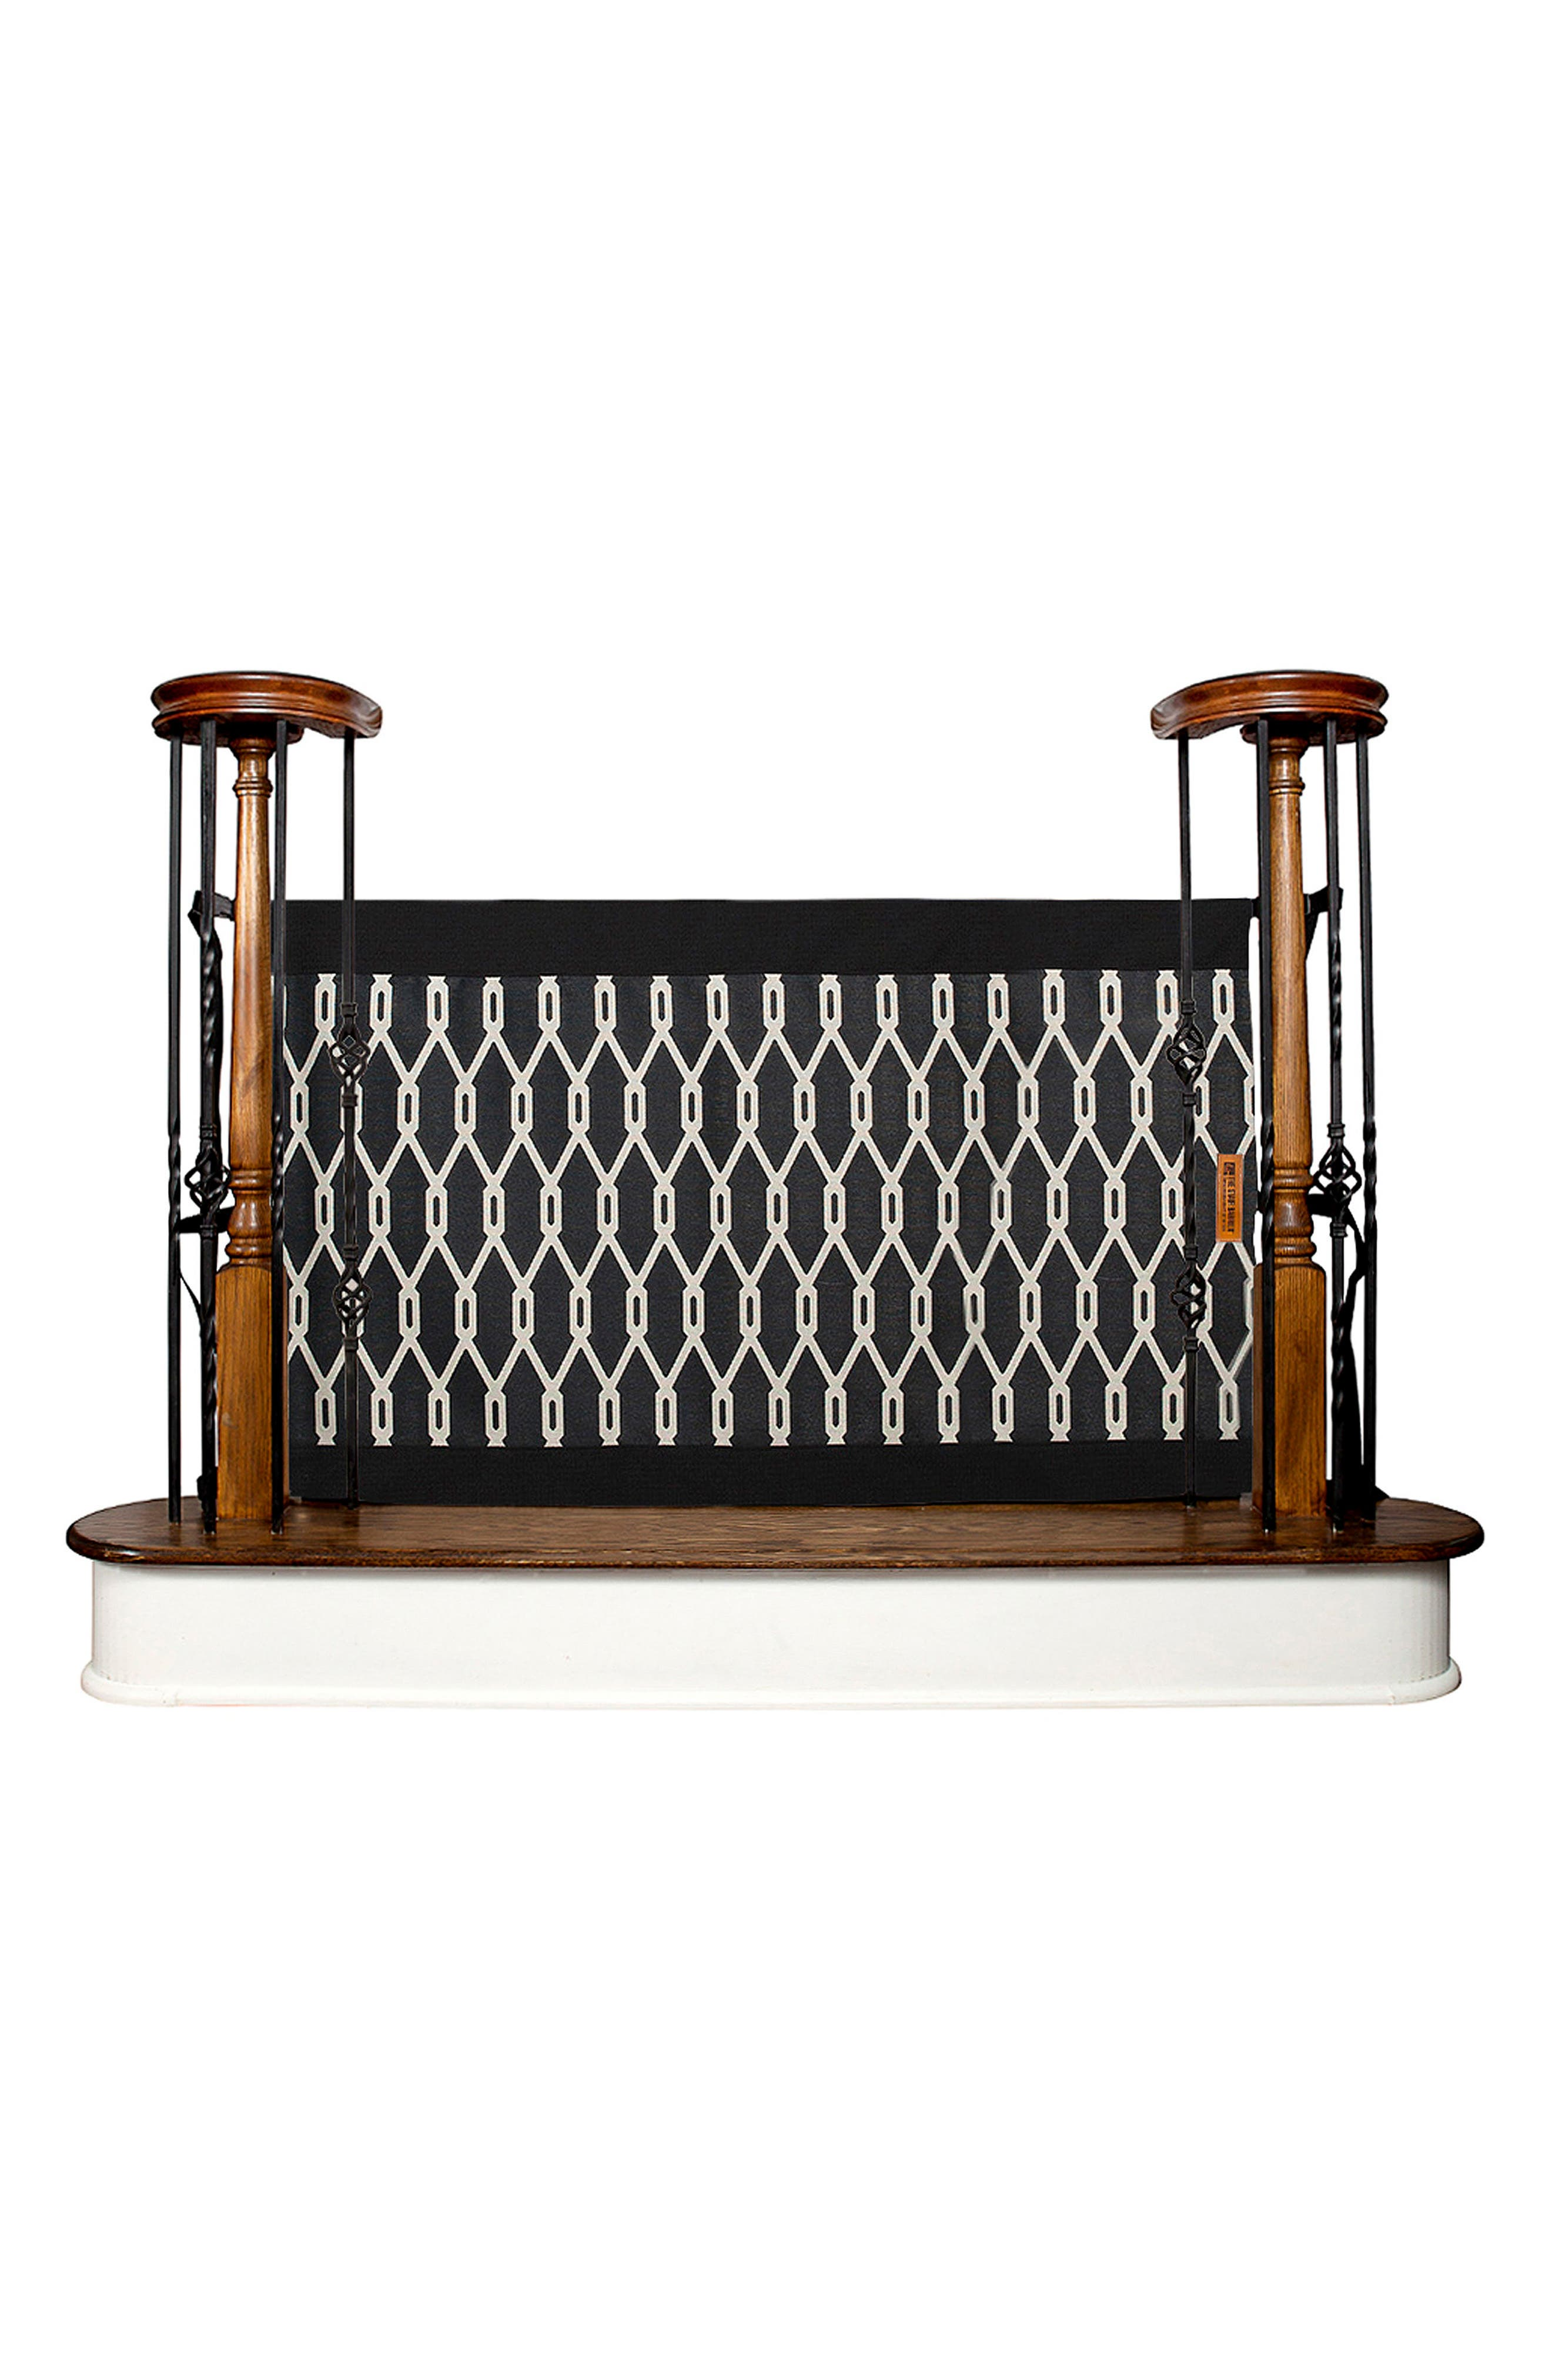 Wall to Banister Indoor Outdoor Safety Gate,                             Alternate thumbnail 2, color,                             002